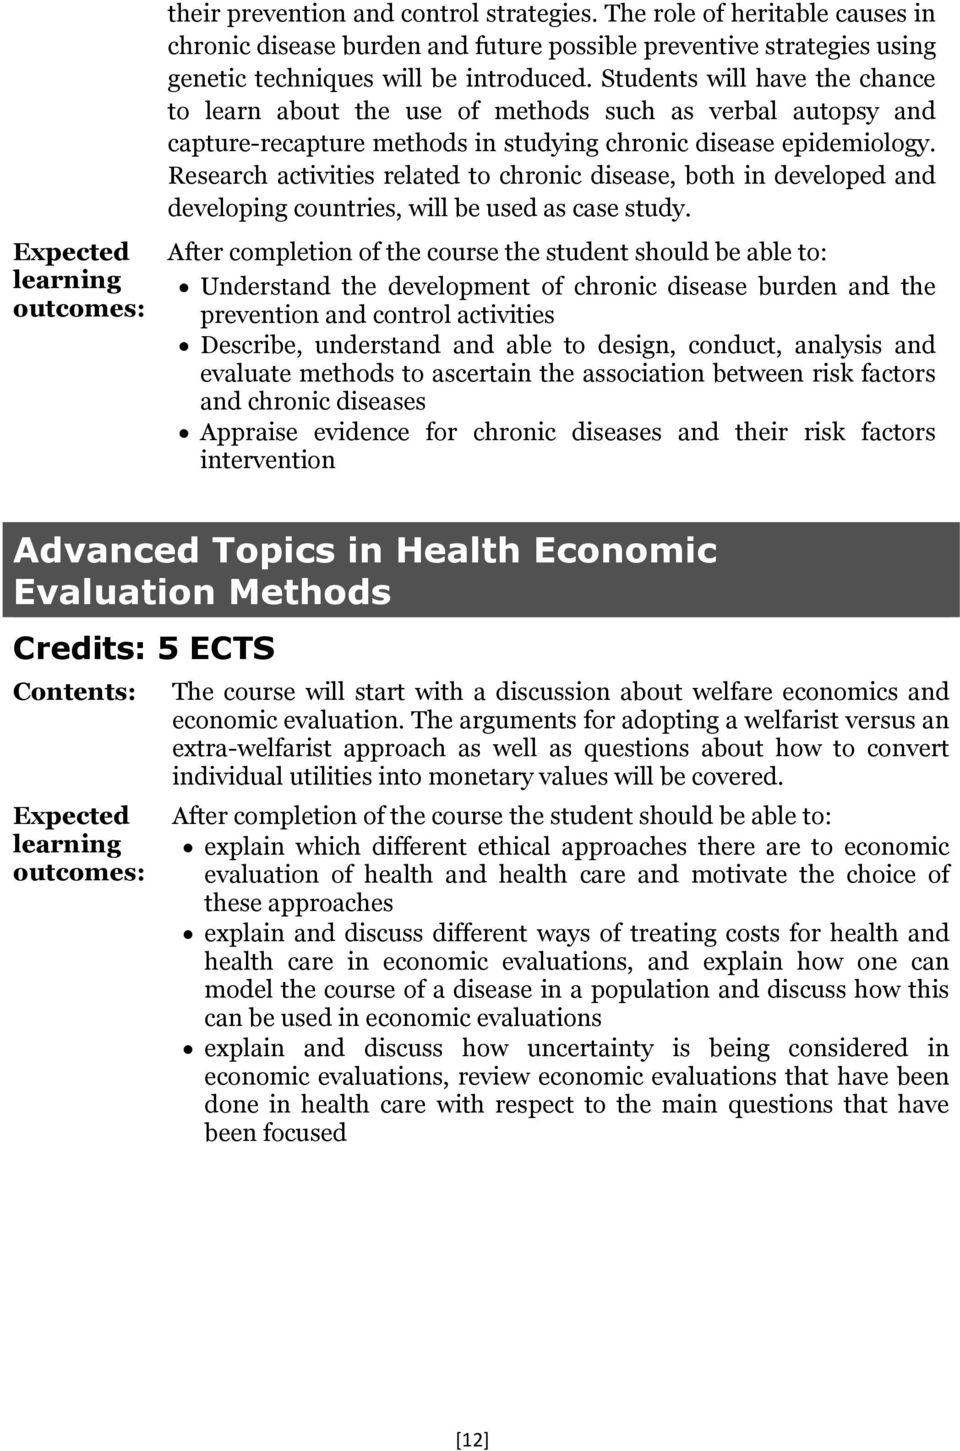 Research activities related to chronic disease, both in developed and developing countries, will be used as case study.